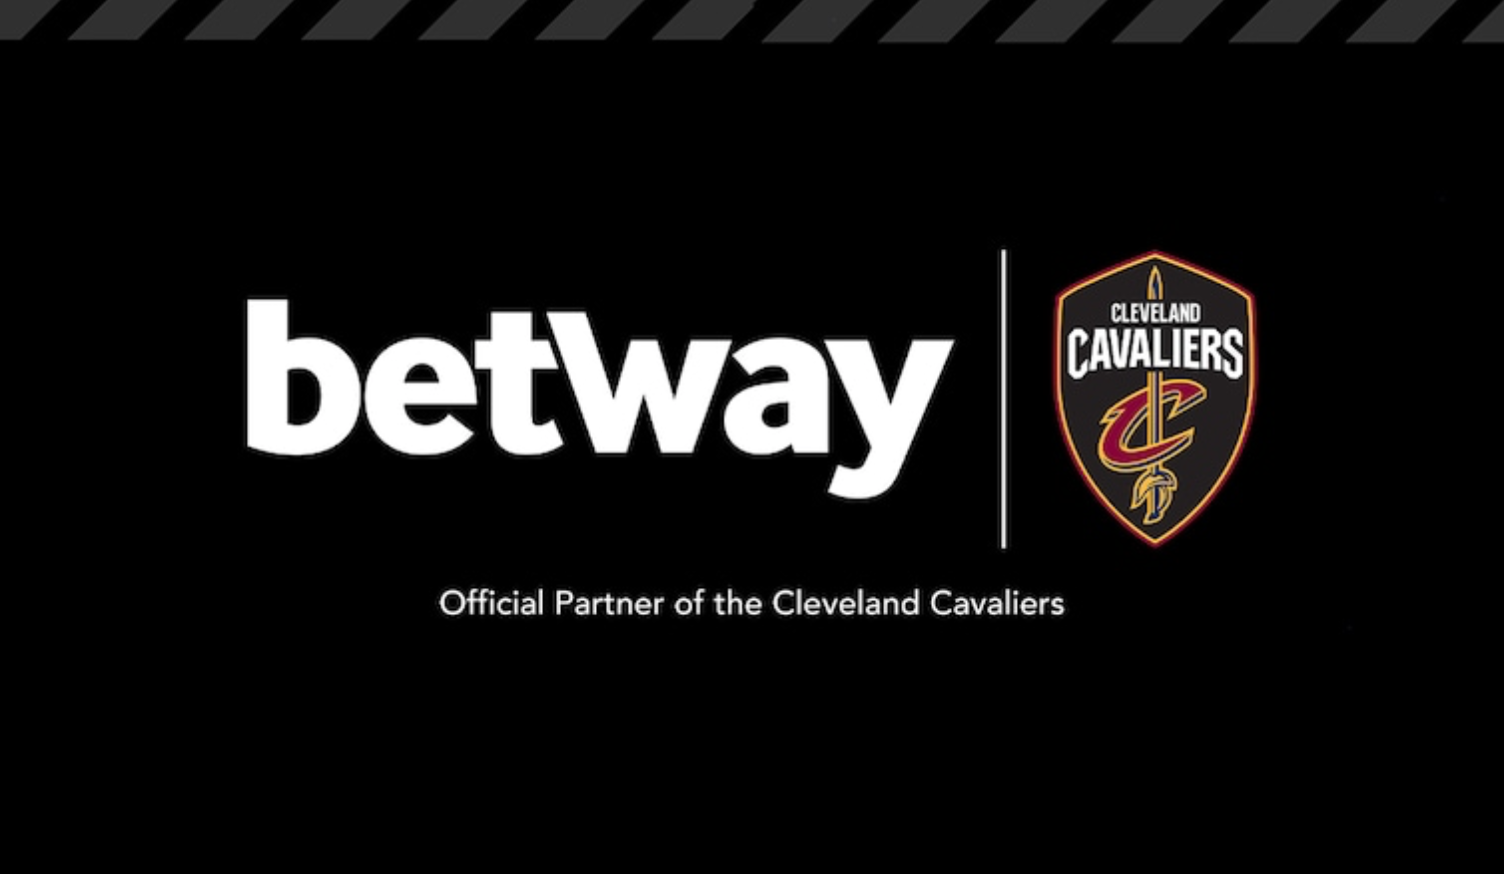 Betway Confirm Cleveland Cavaliers Deal